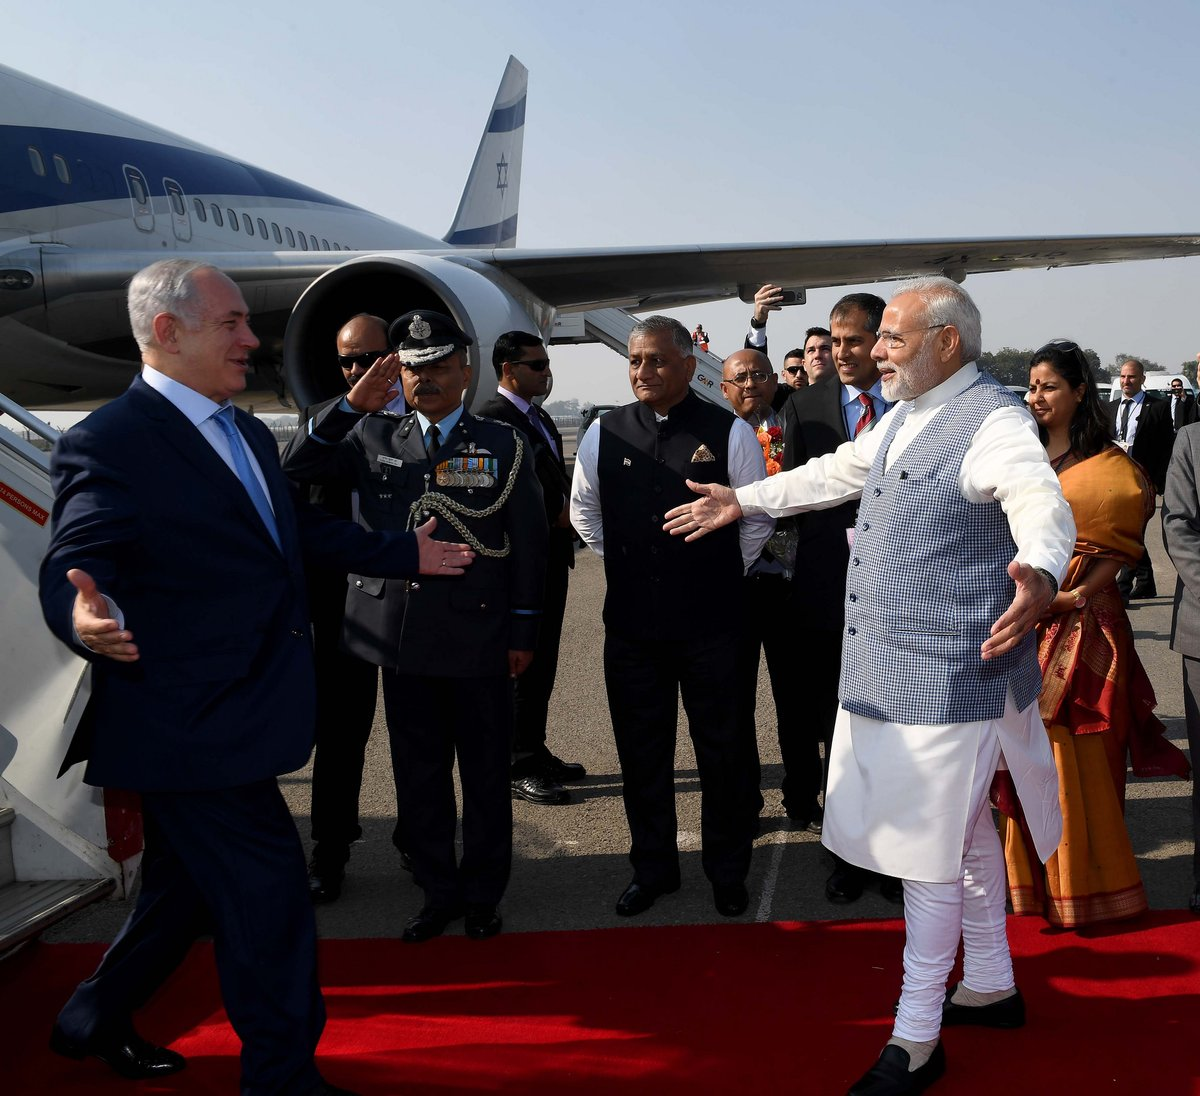 Benjamin Netanyahu in INDIA: Visit of PM Benjamin Netanyahu is far more important than we think